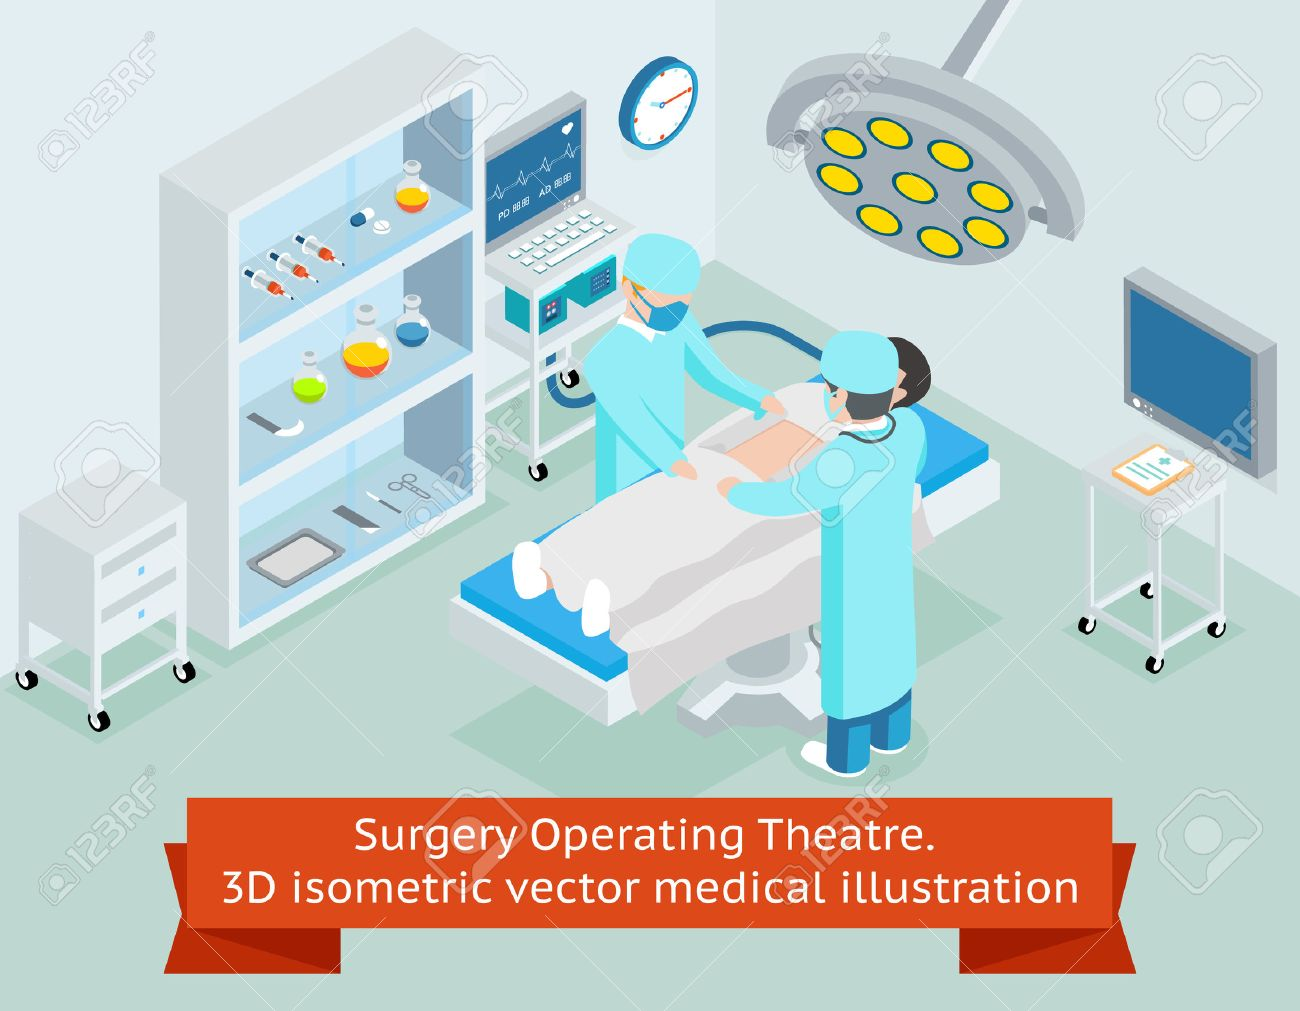 Surgery operating theatre. 3D isometric medical. Procedure in hospital, surgeon doctor, operation sterile, surgical healthcare, illustration - 48207036